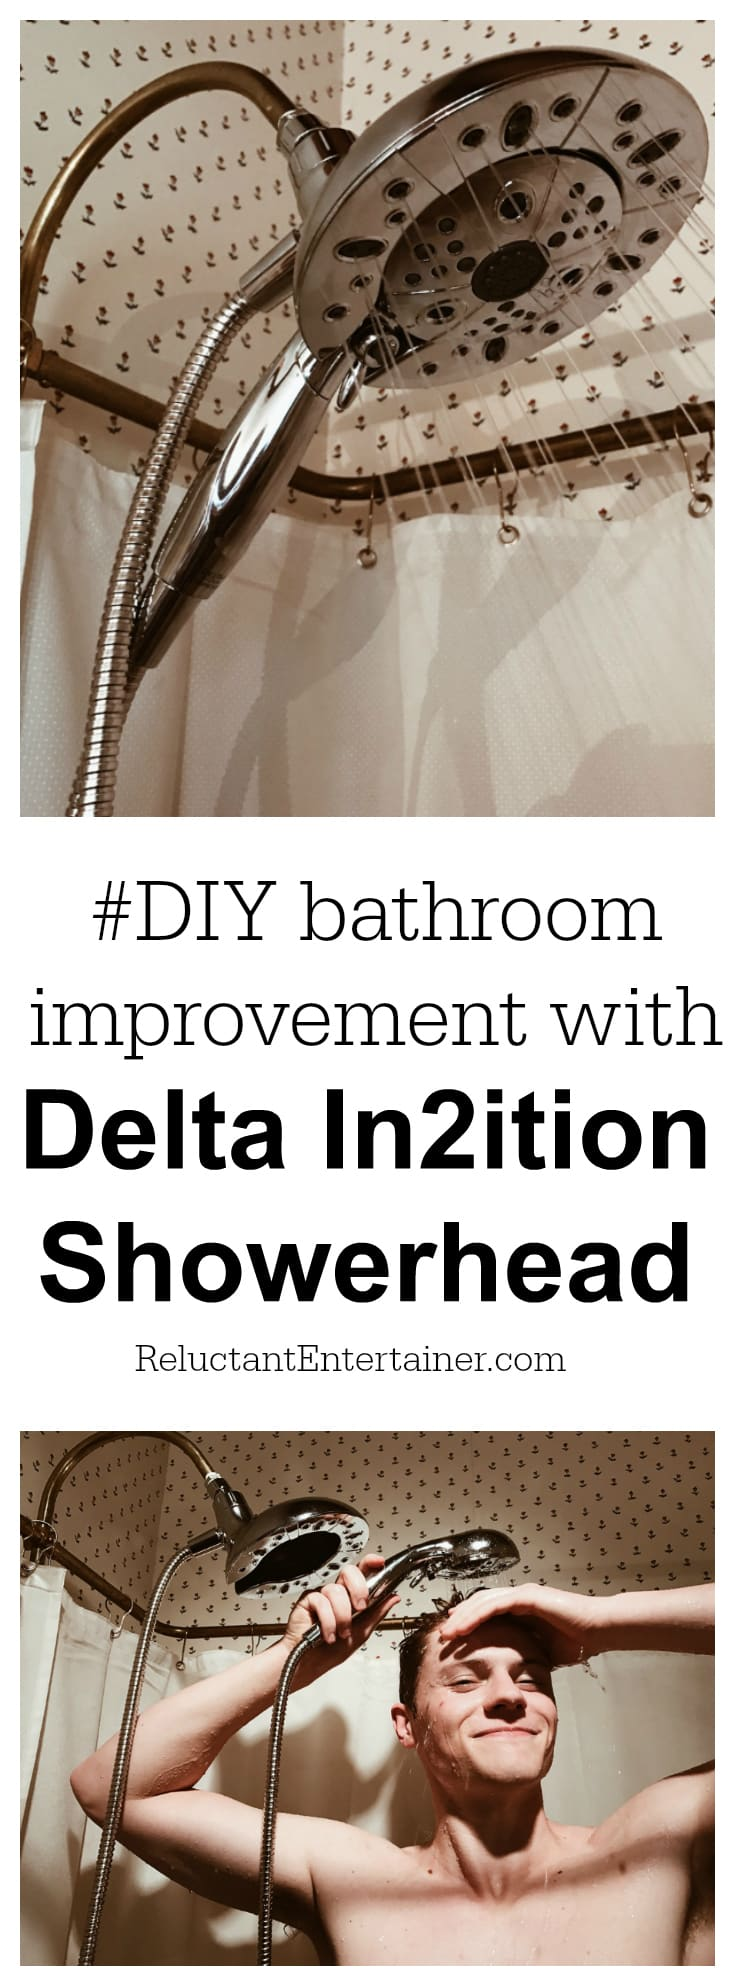 #DIY Bathroom Improvement with Delta In2ition Showerhead at ReluctantEntertainer.com